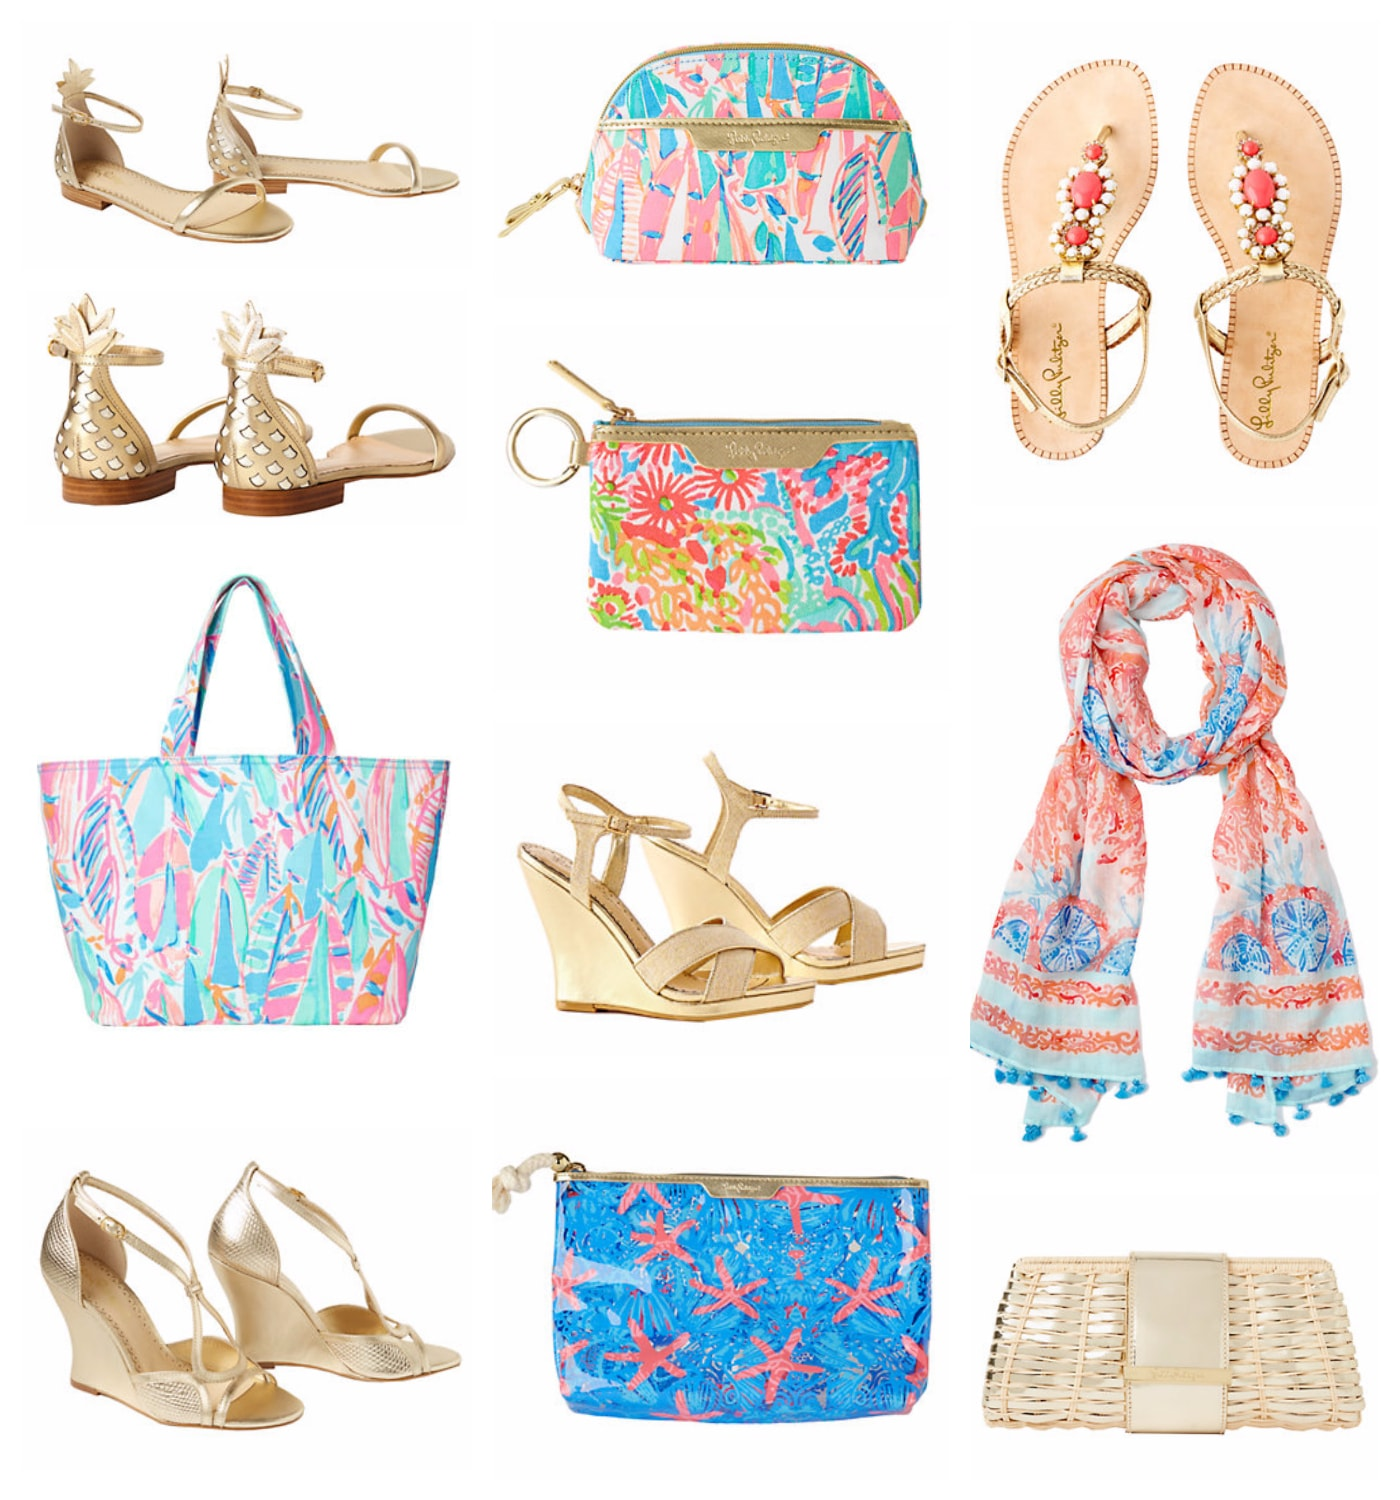 Lilly Pulitzer new arrivals + gifts with purchase | post by style blogger Ashley Brooke Nicholas